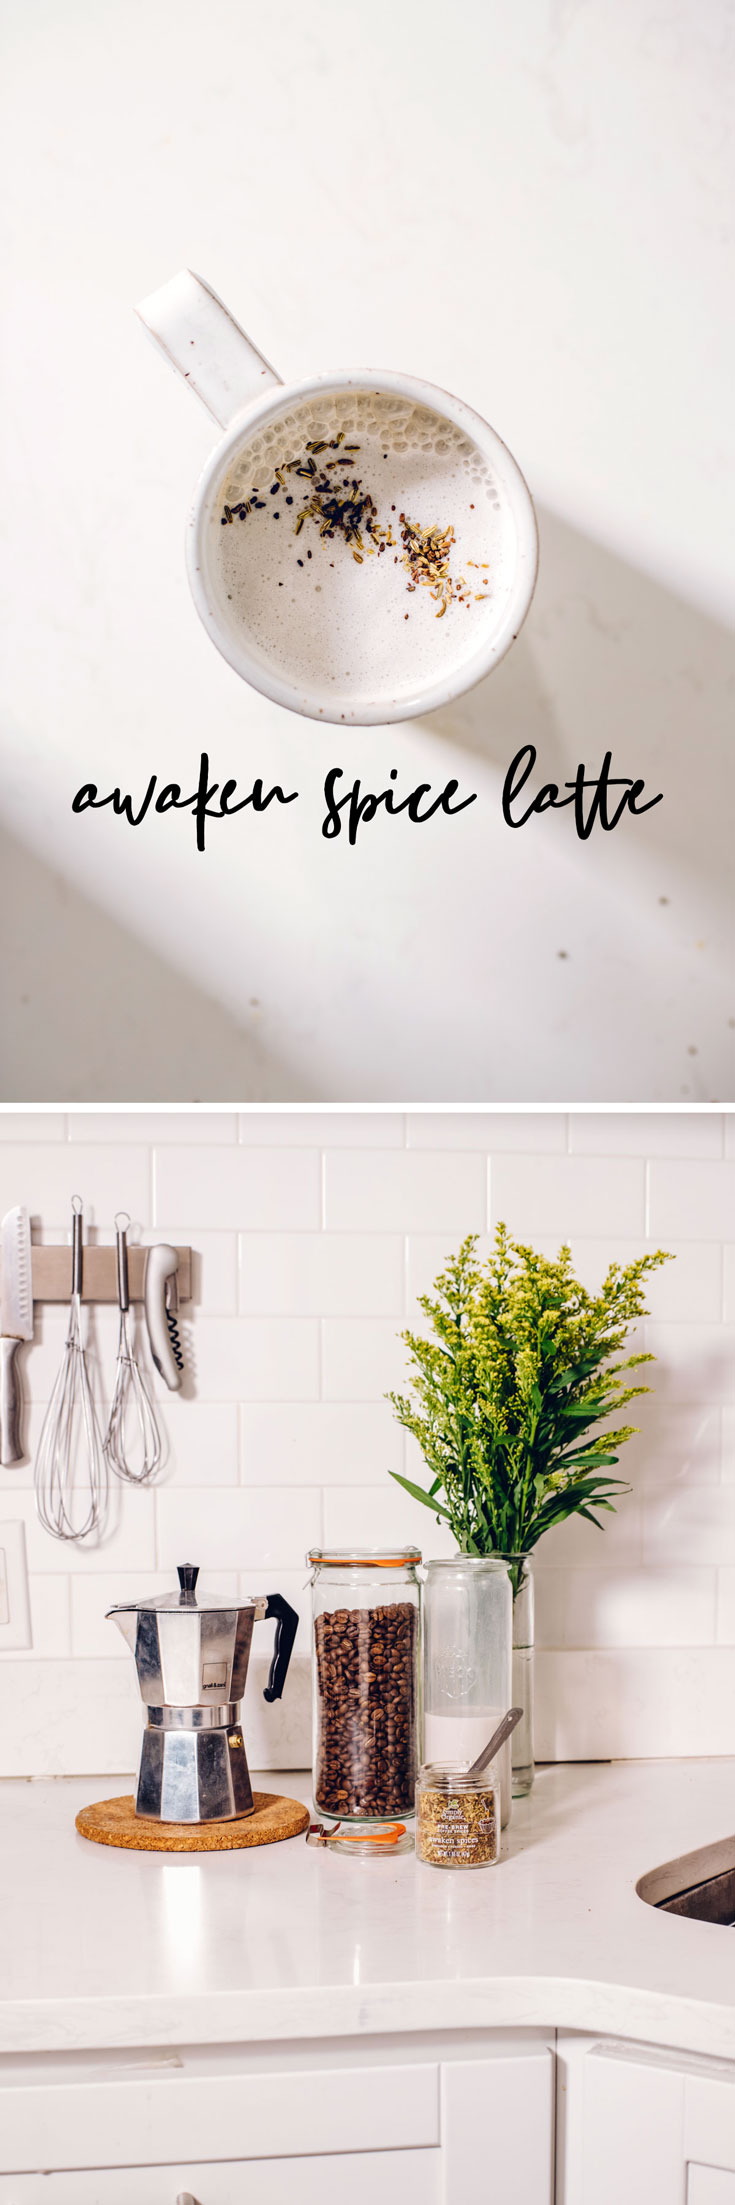 Learn how to make a legit latte at home the easy (and cheap) way by making this Awaken Spice Latte with Simply Organic Coffee Spices in a moka pot! #latte #awakenspice #coffeespices #coffee #vegan | Brewing Happiness